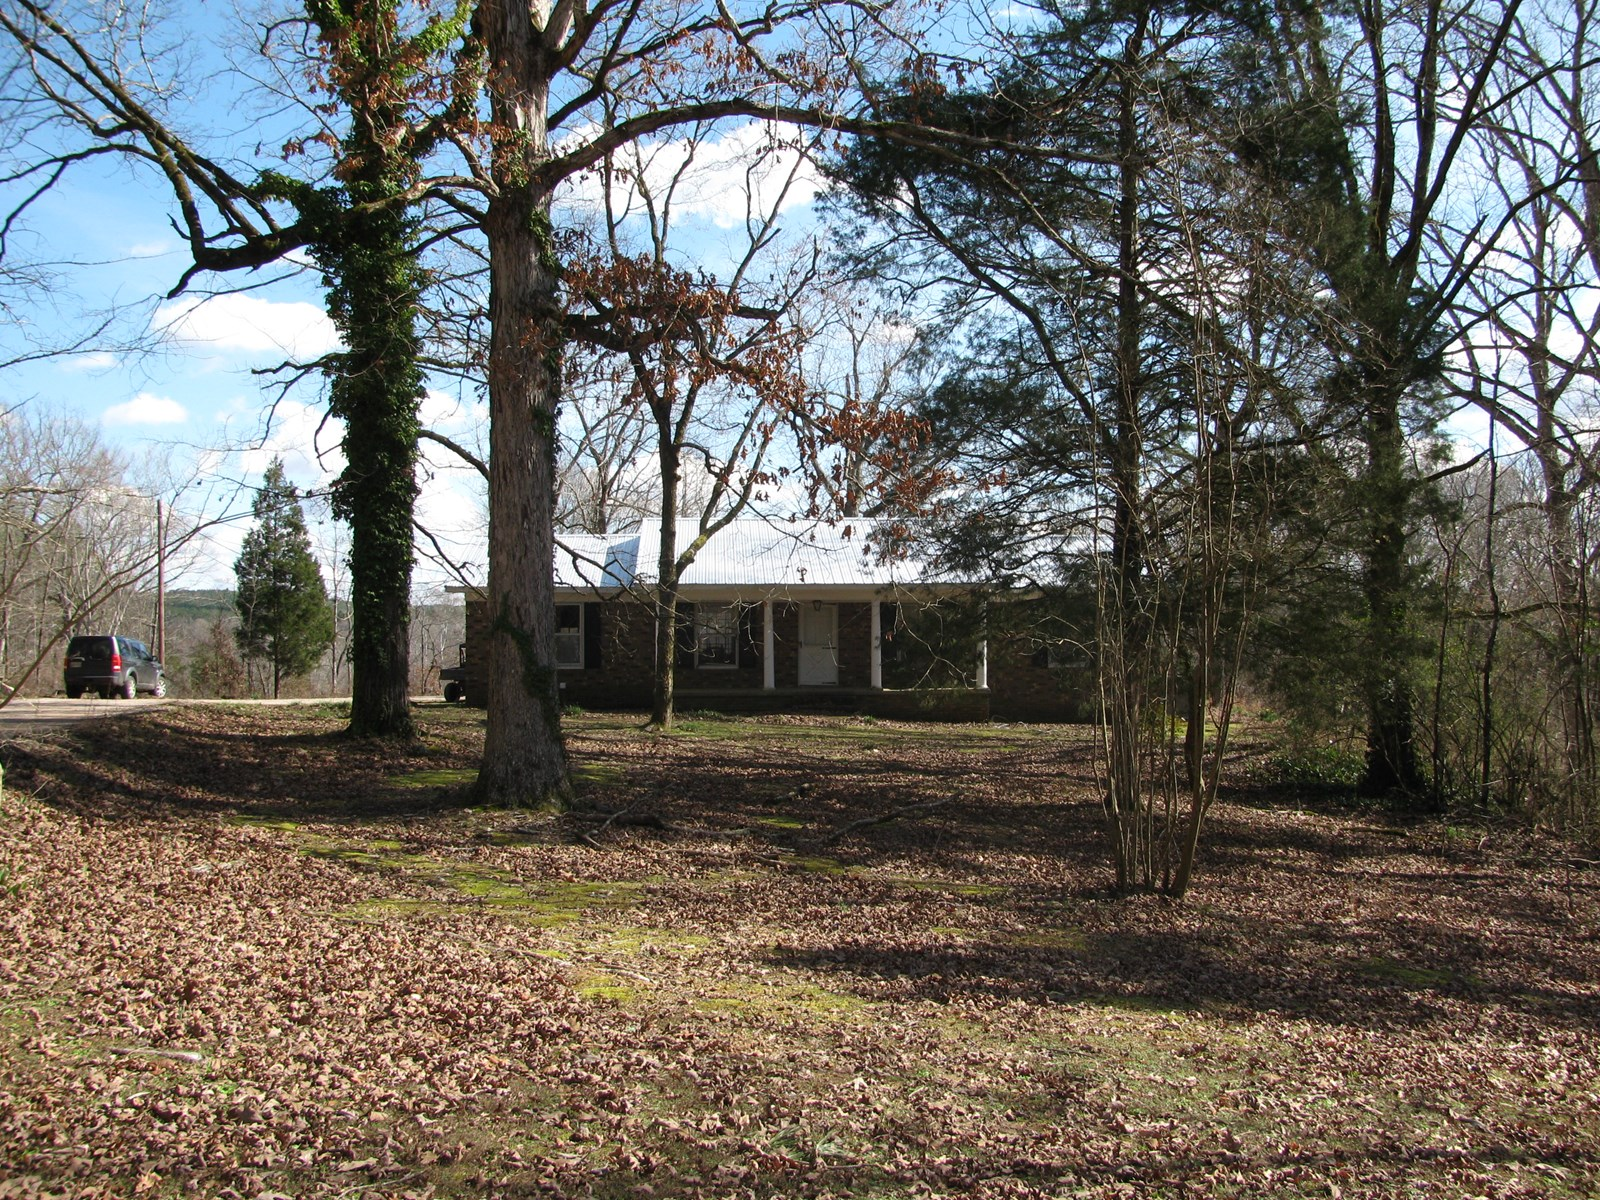 BRICK HOME ON ACREAGE FOR SALE IN TENNESSEE, GREAT HUNTING